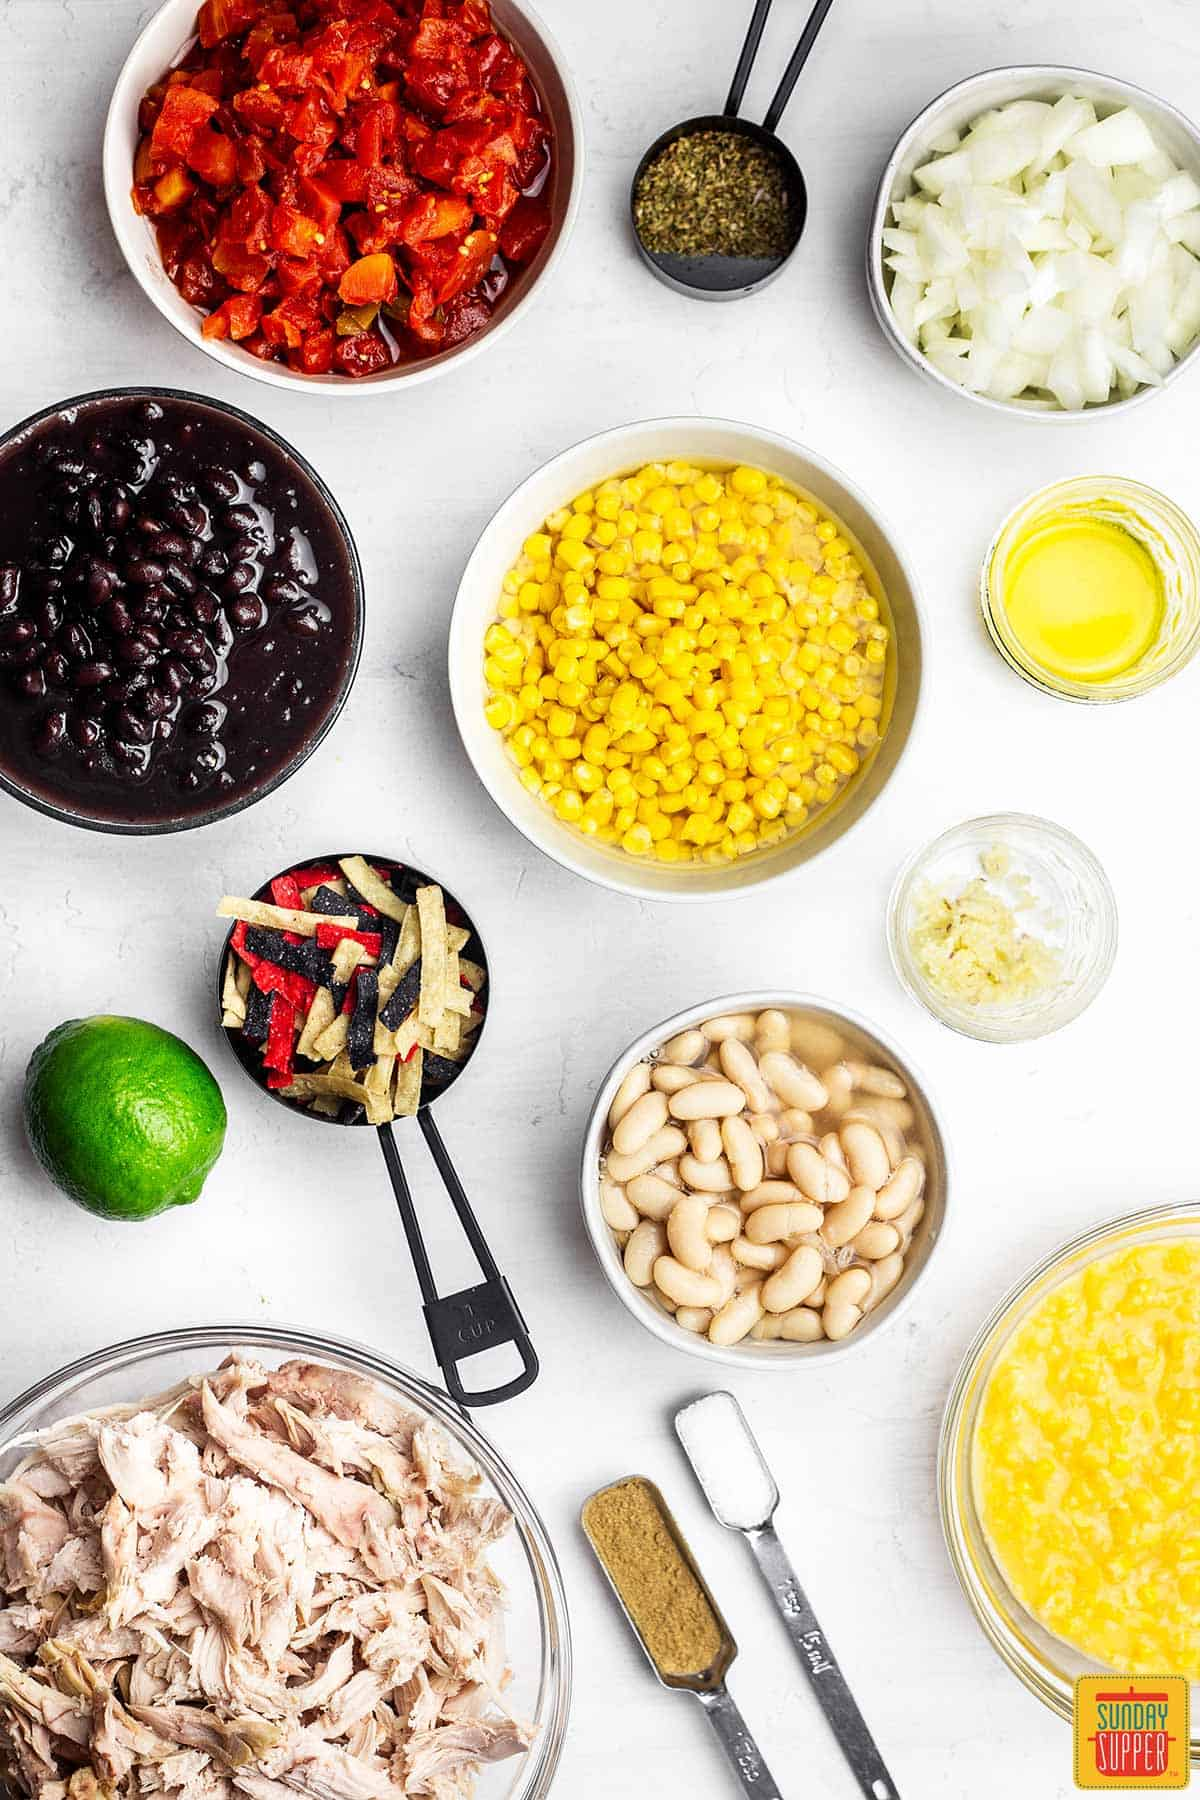 Ingredients for easy chicken tortilla soup recipe